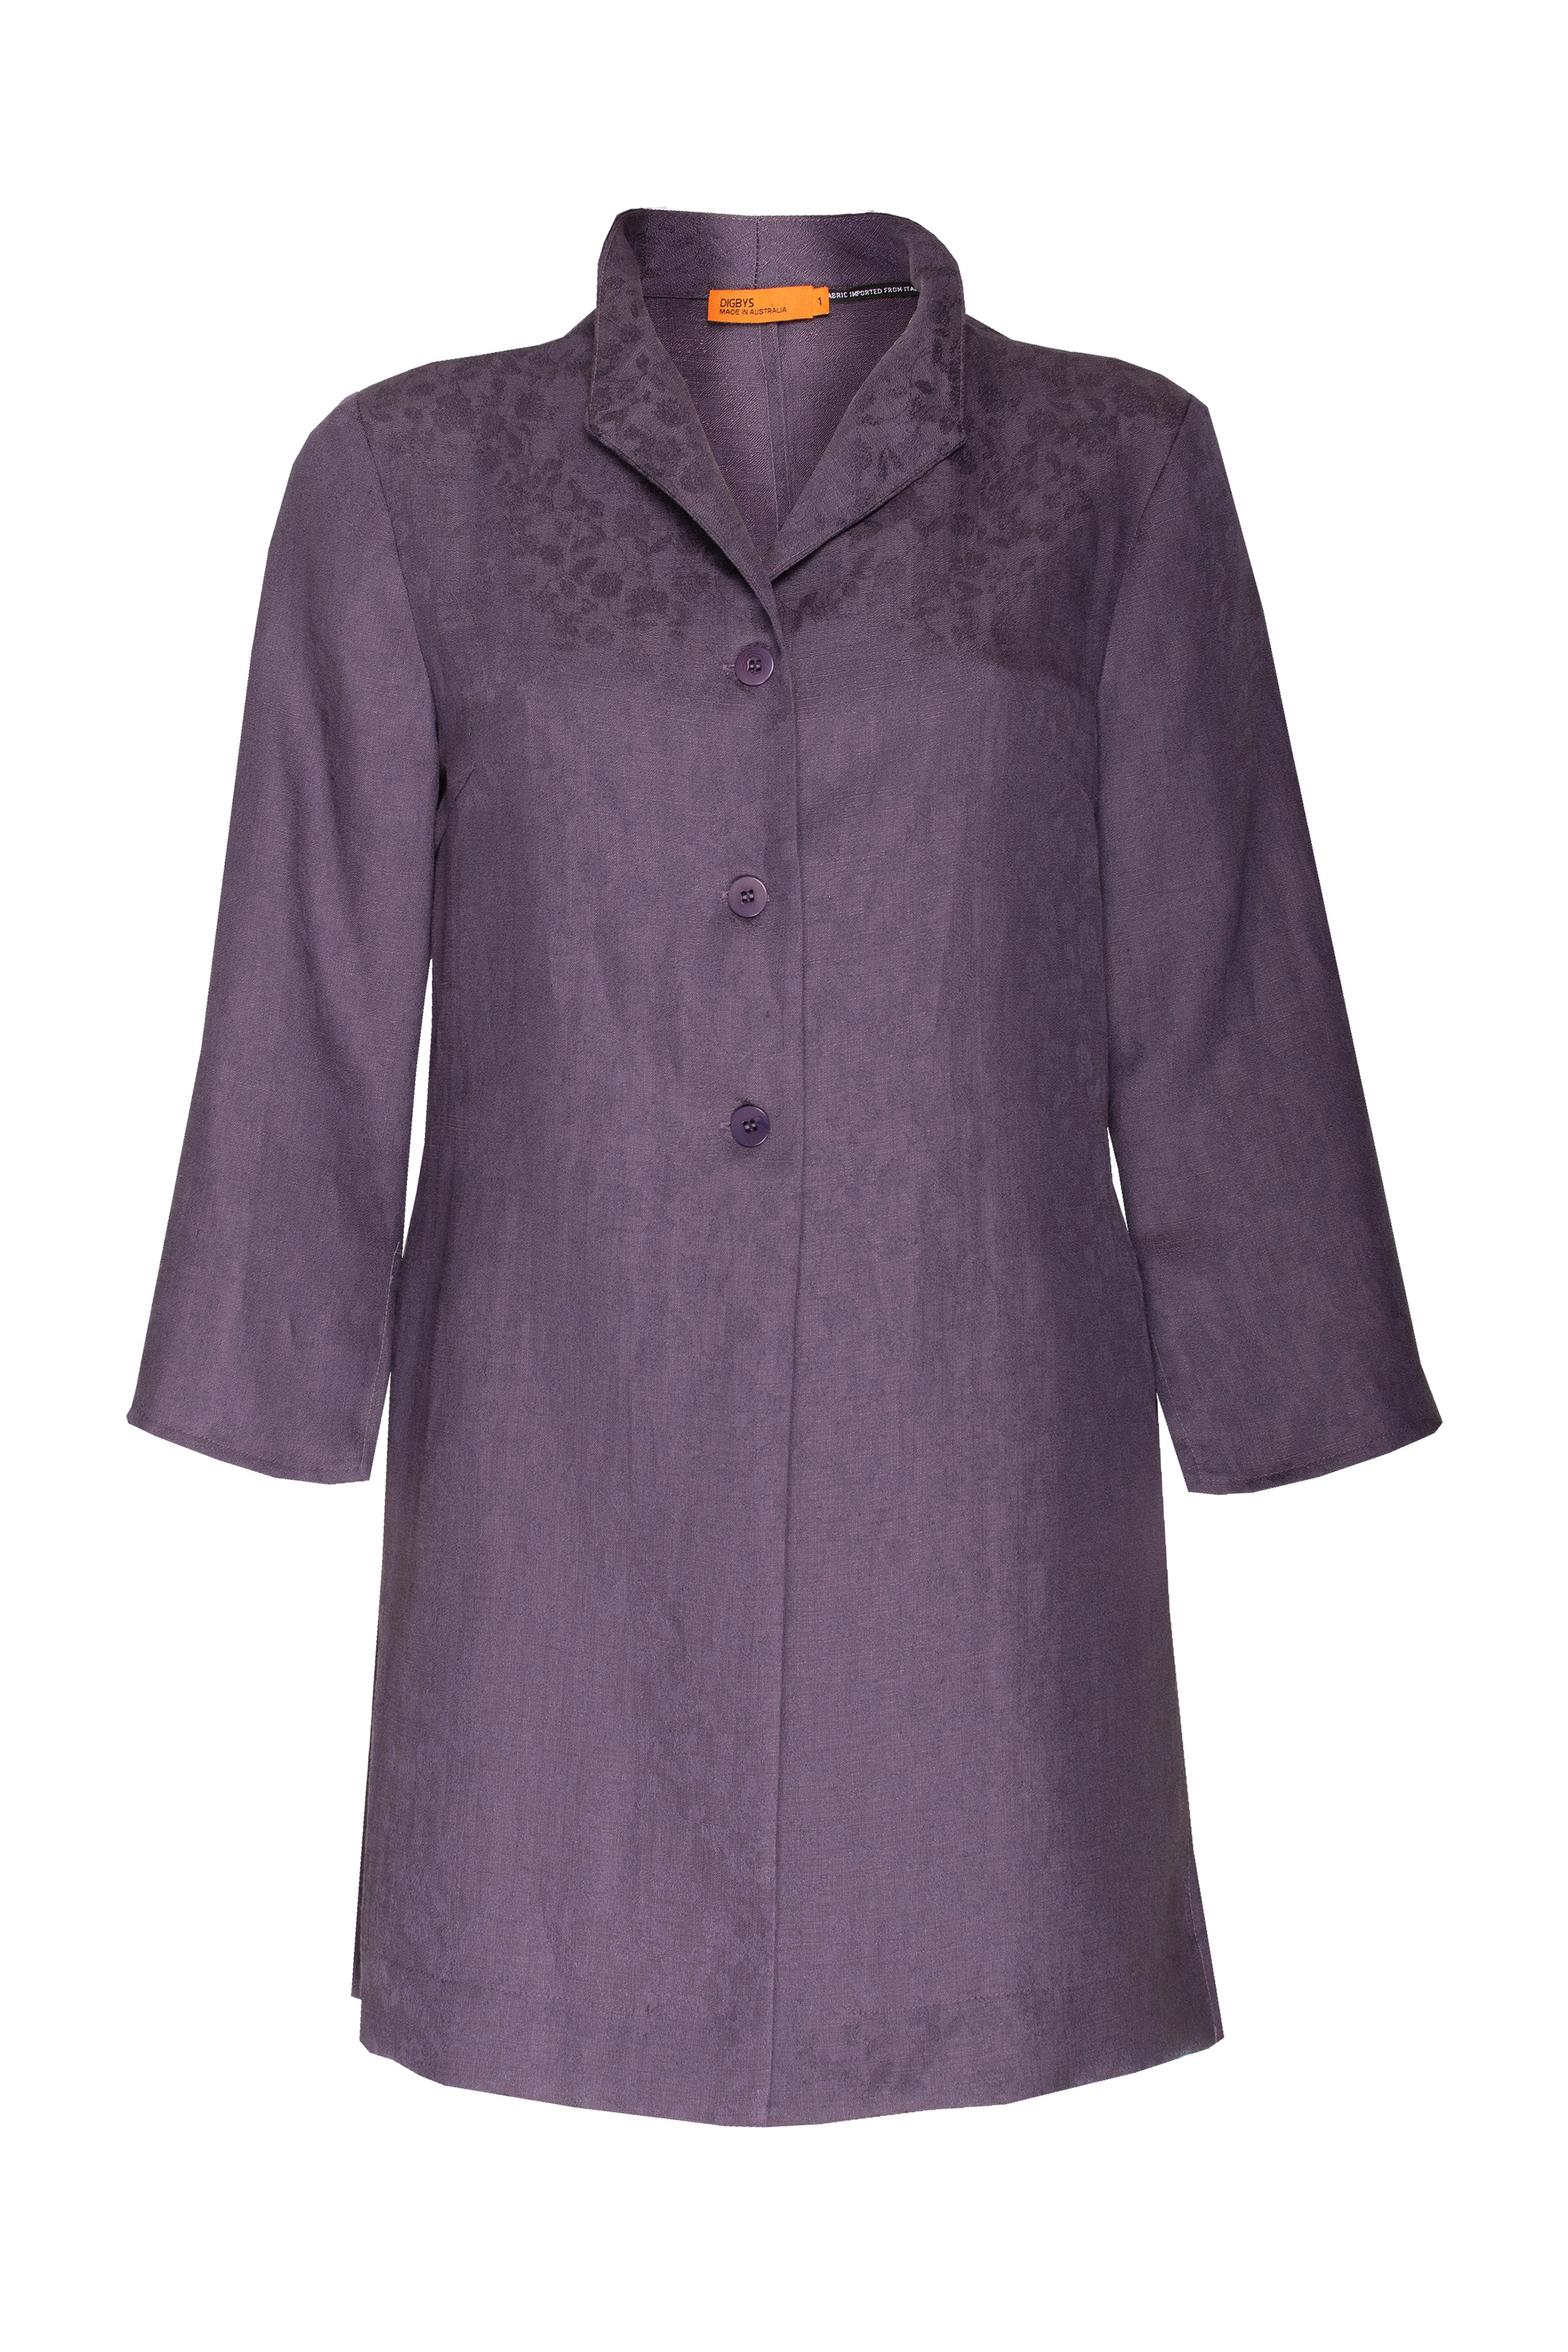 Purple 3/4 Sleeve Long Shirt  8231